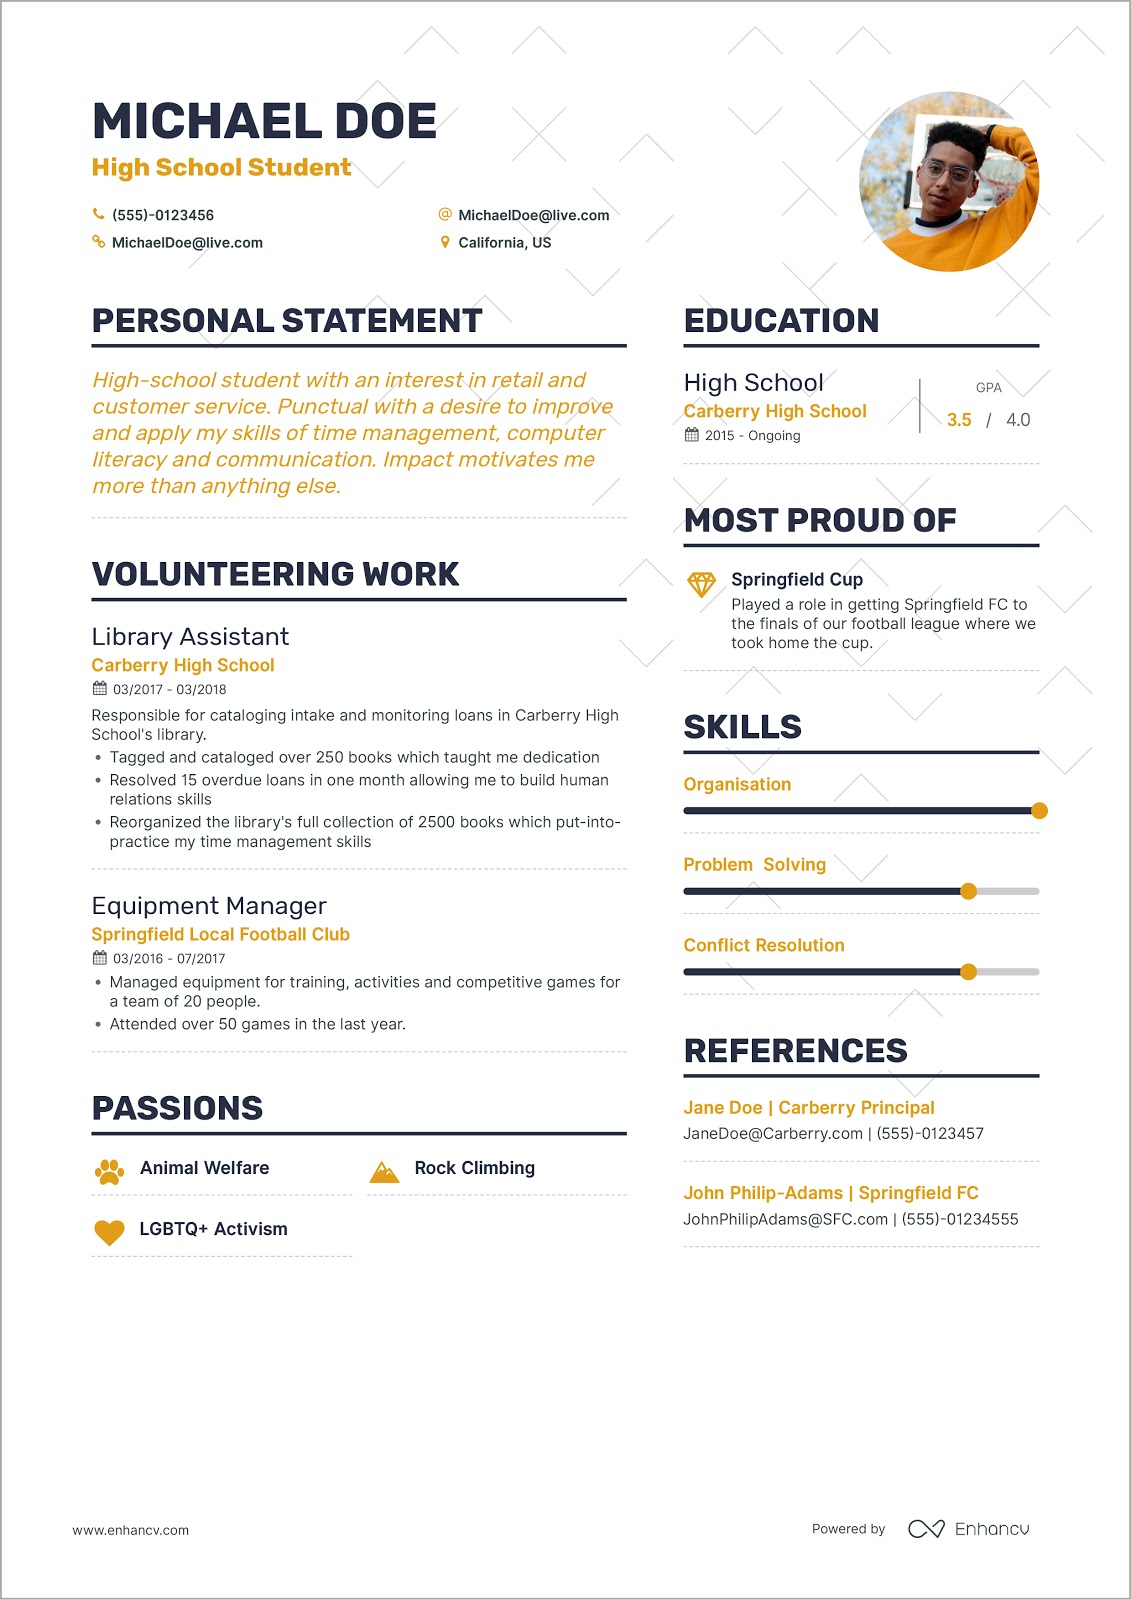 to write your first job resume putting together michaeldoeresume firstresume game of Resume Putting Together A Resume